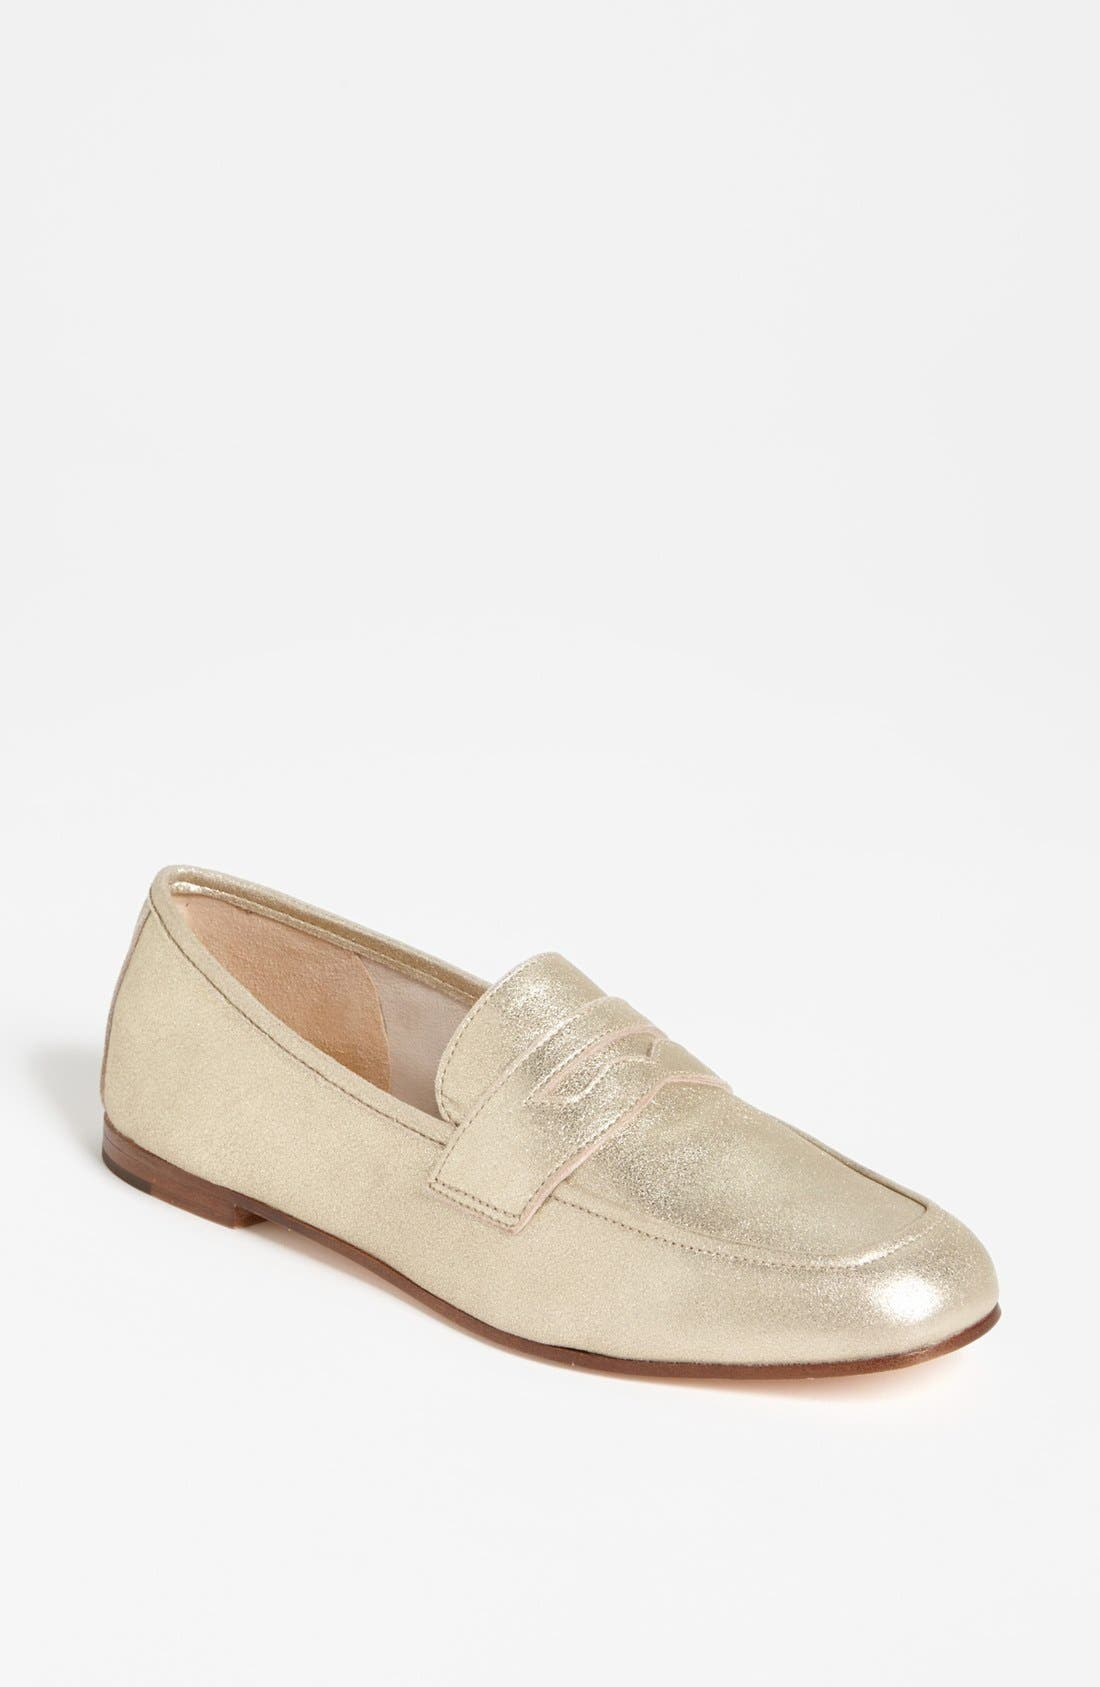 Alternate Image 1 Selected - IVANKA TRUMP SASHA LOAFER